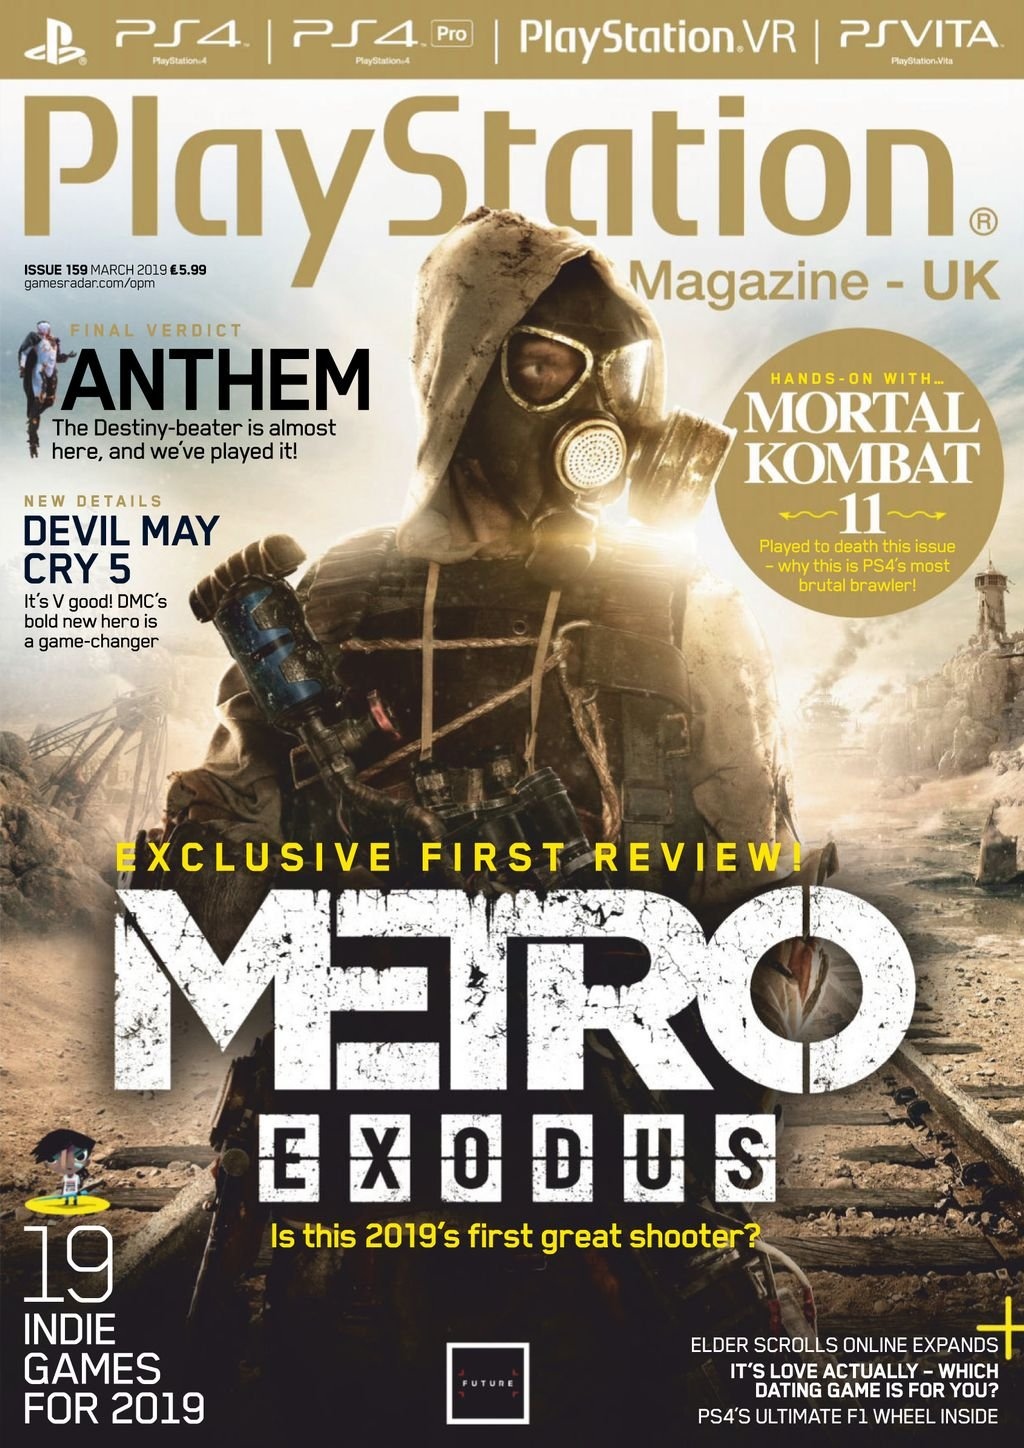 Playstation Official Magazine UK 159 (March 2019)